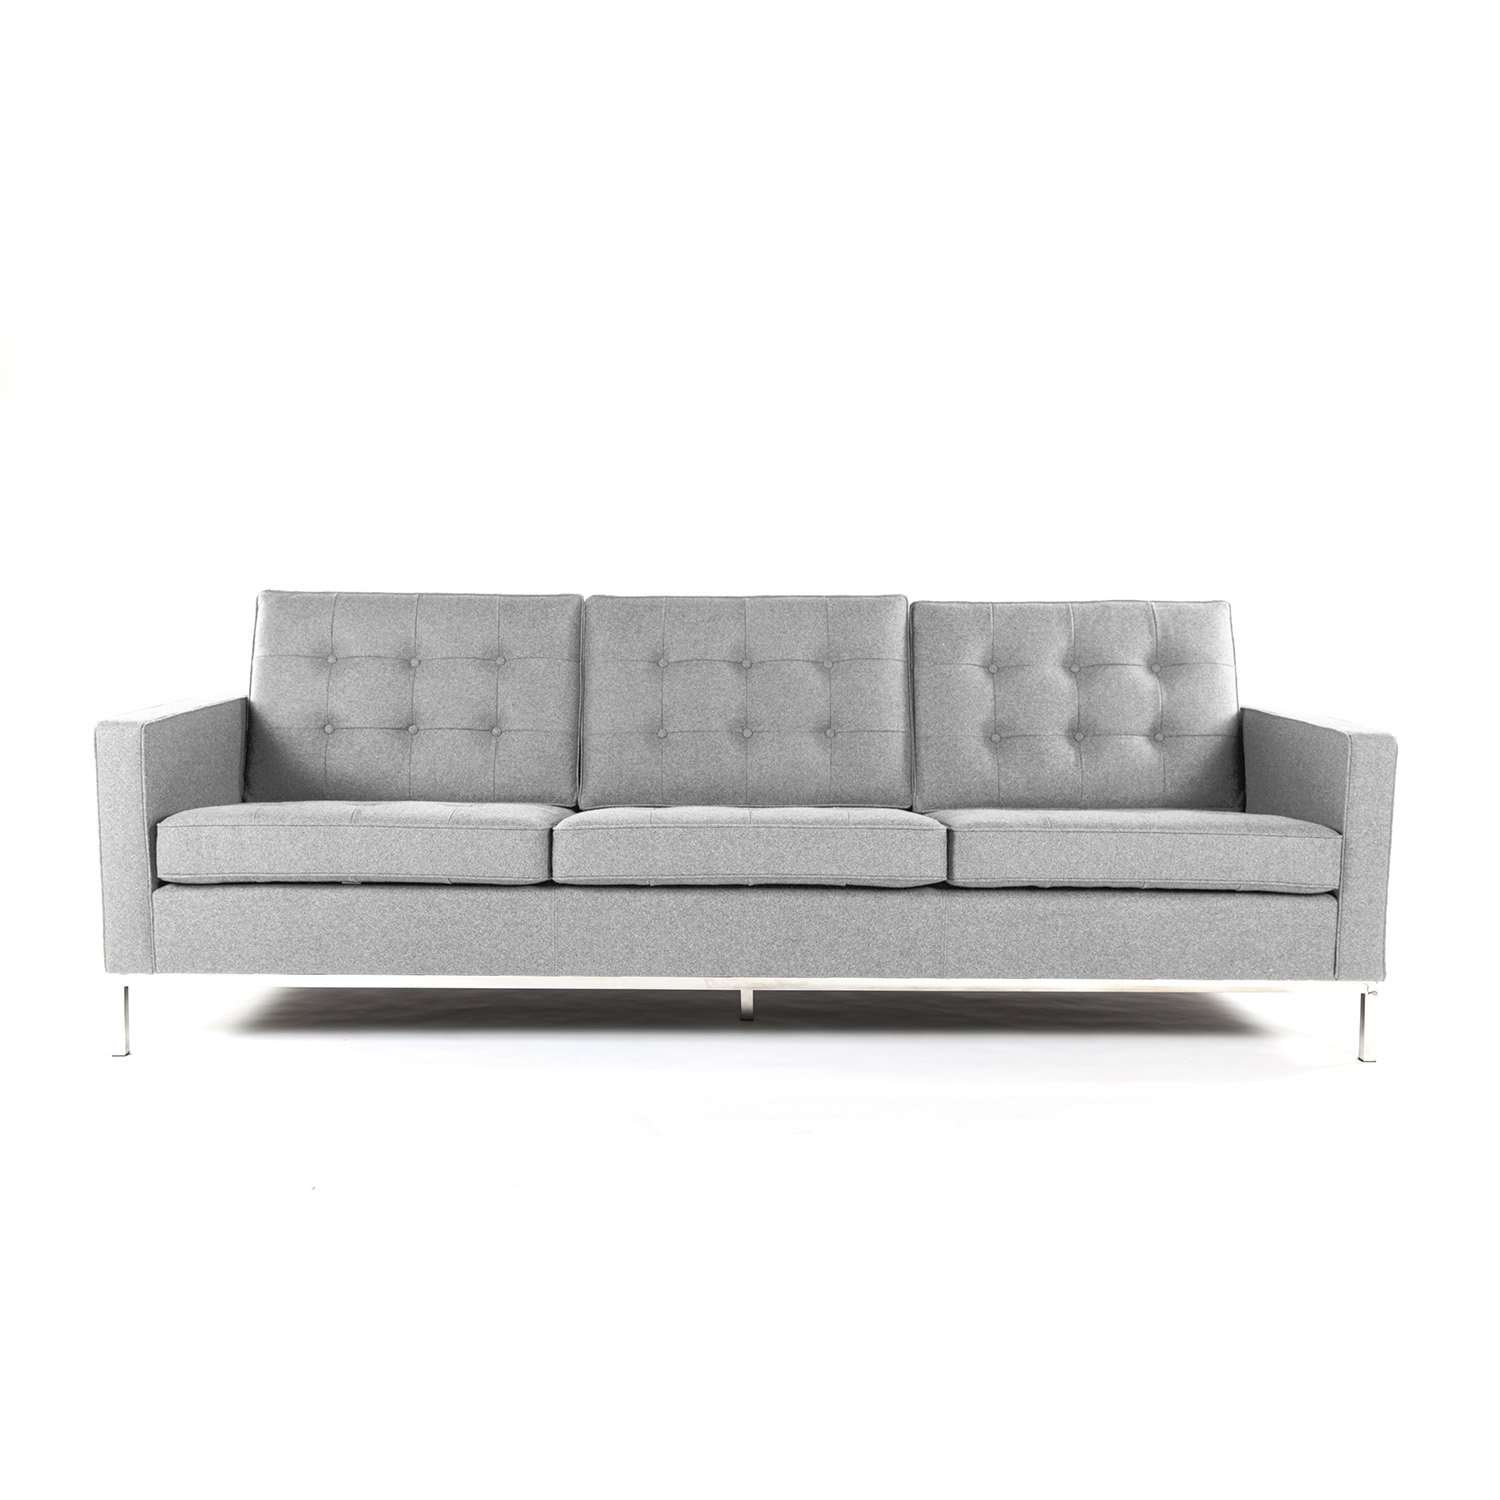 Mid century modern tufted sofa 90 light grey